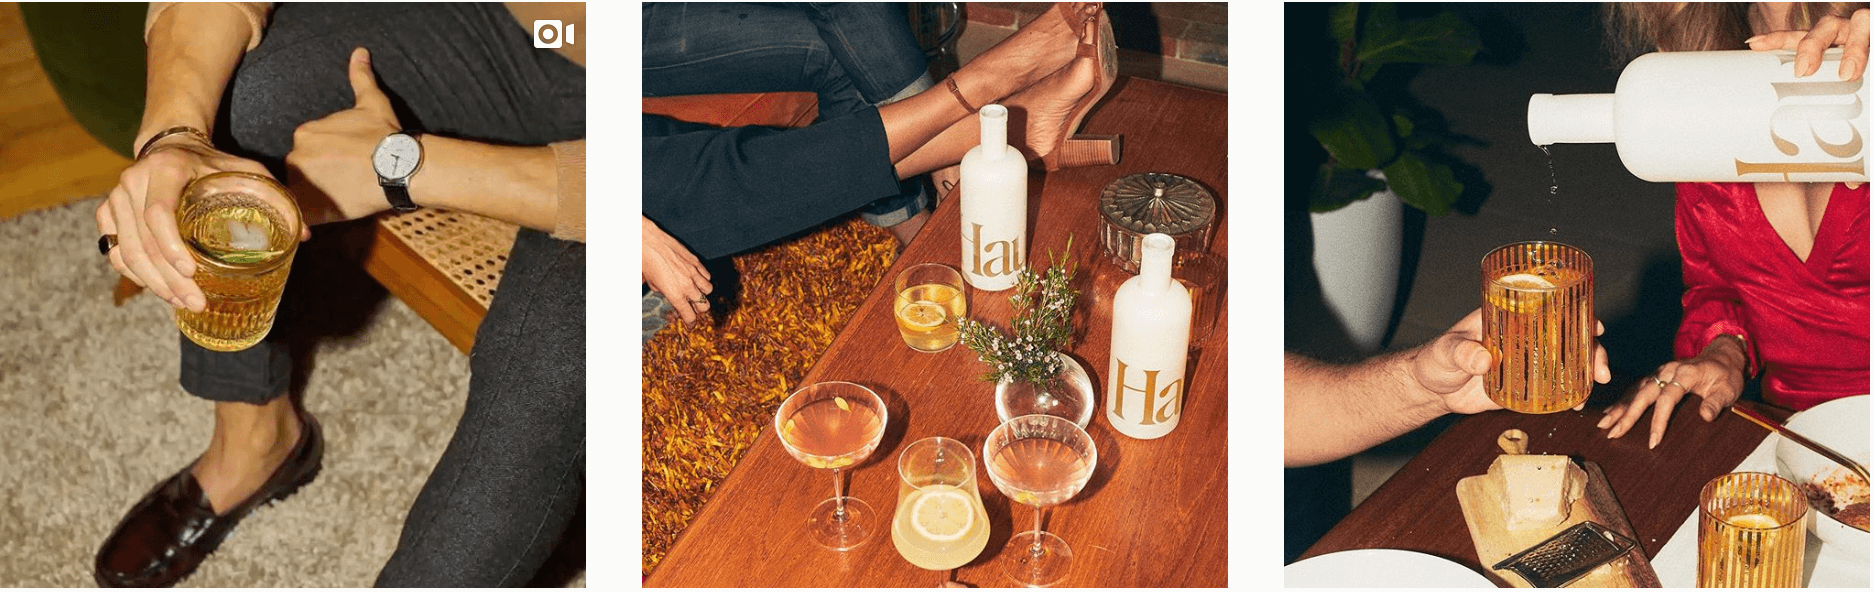 Her plan starts and ends with aperitifs. @drinkhaus